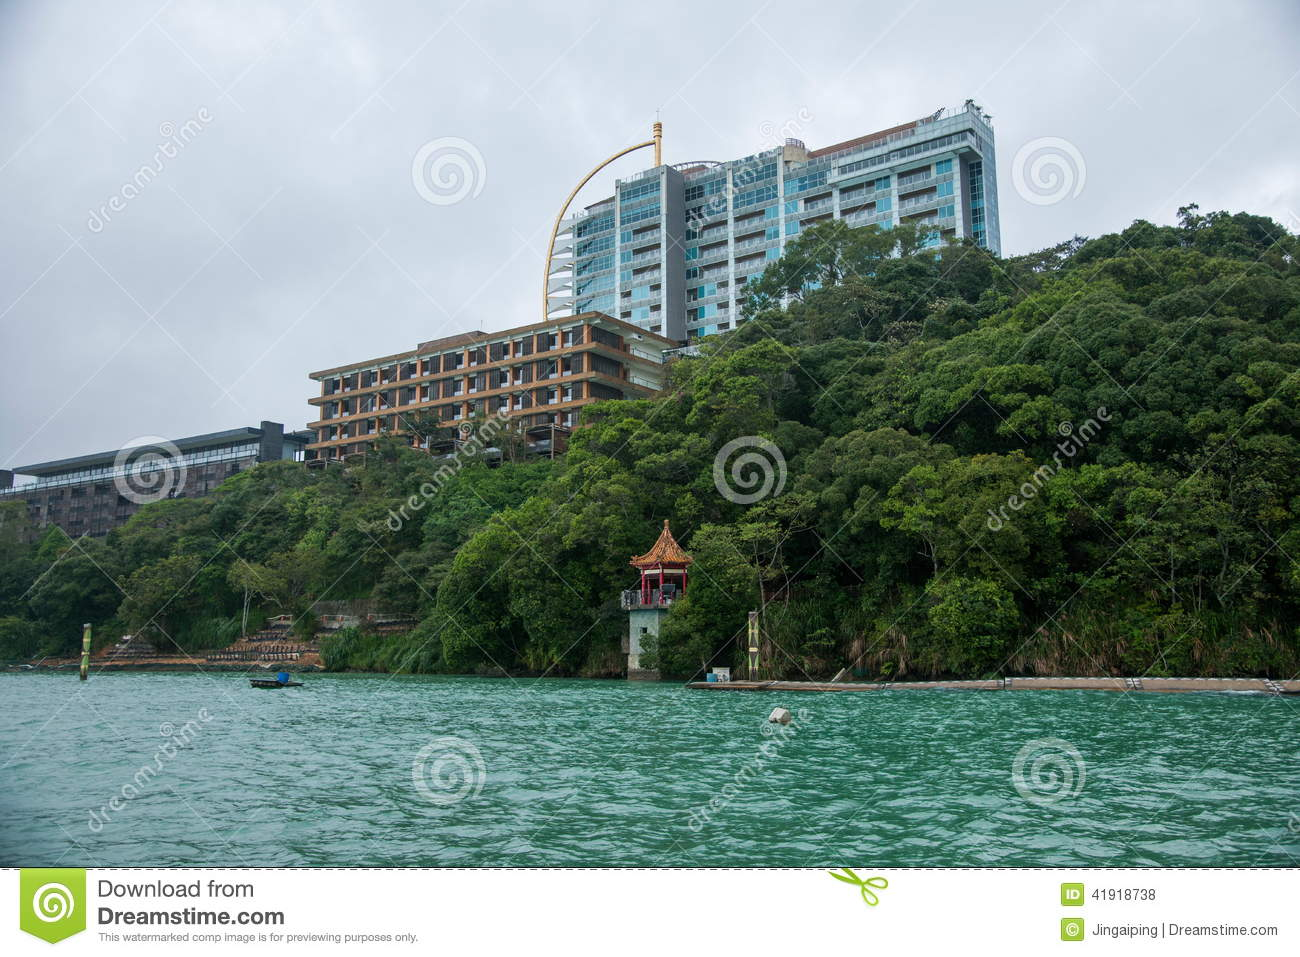 Sun Moon Lake in Nantou County, Taiwan Scenery